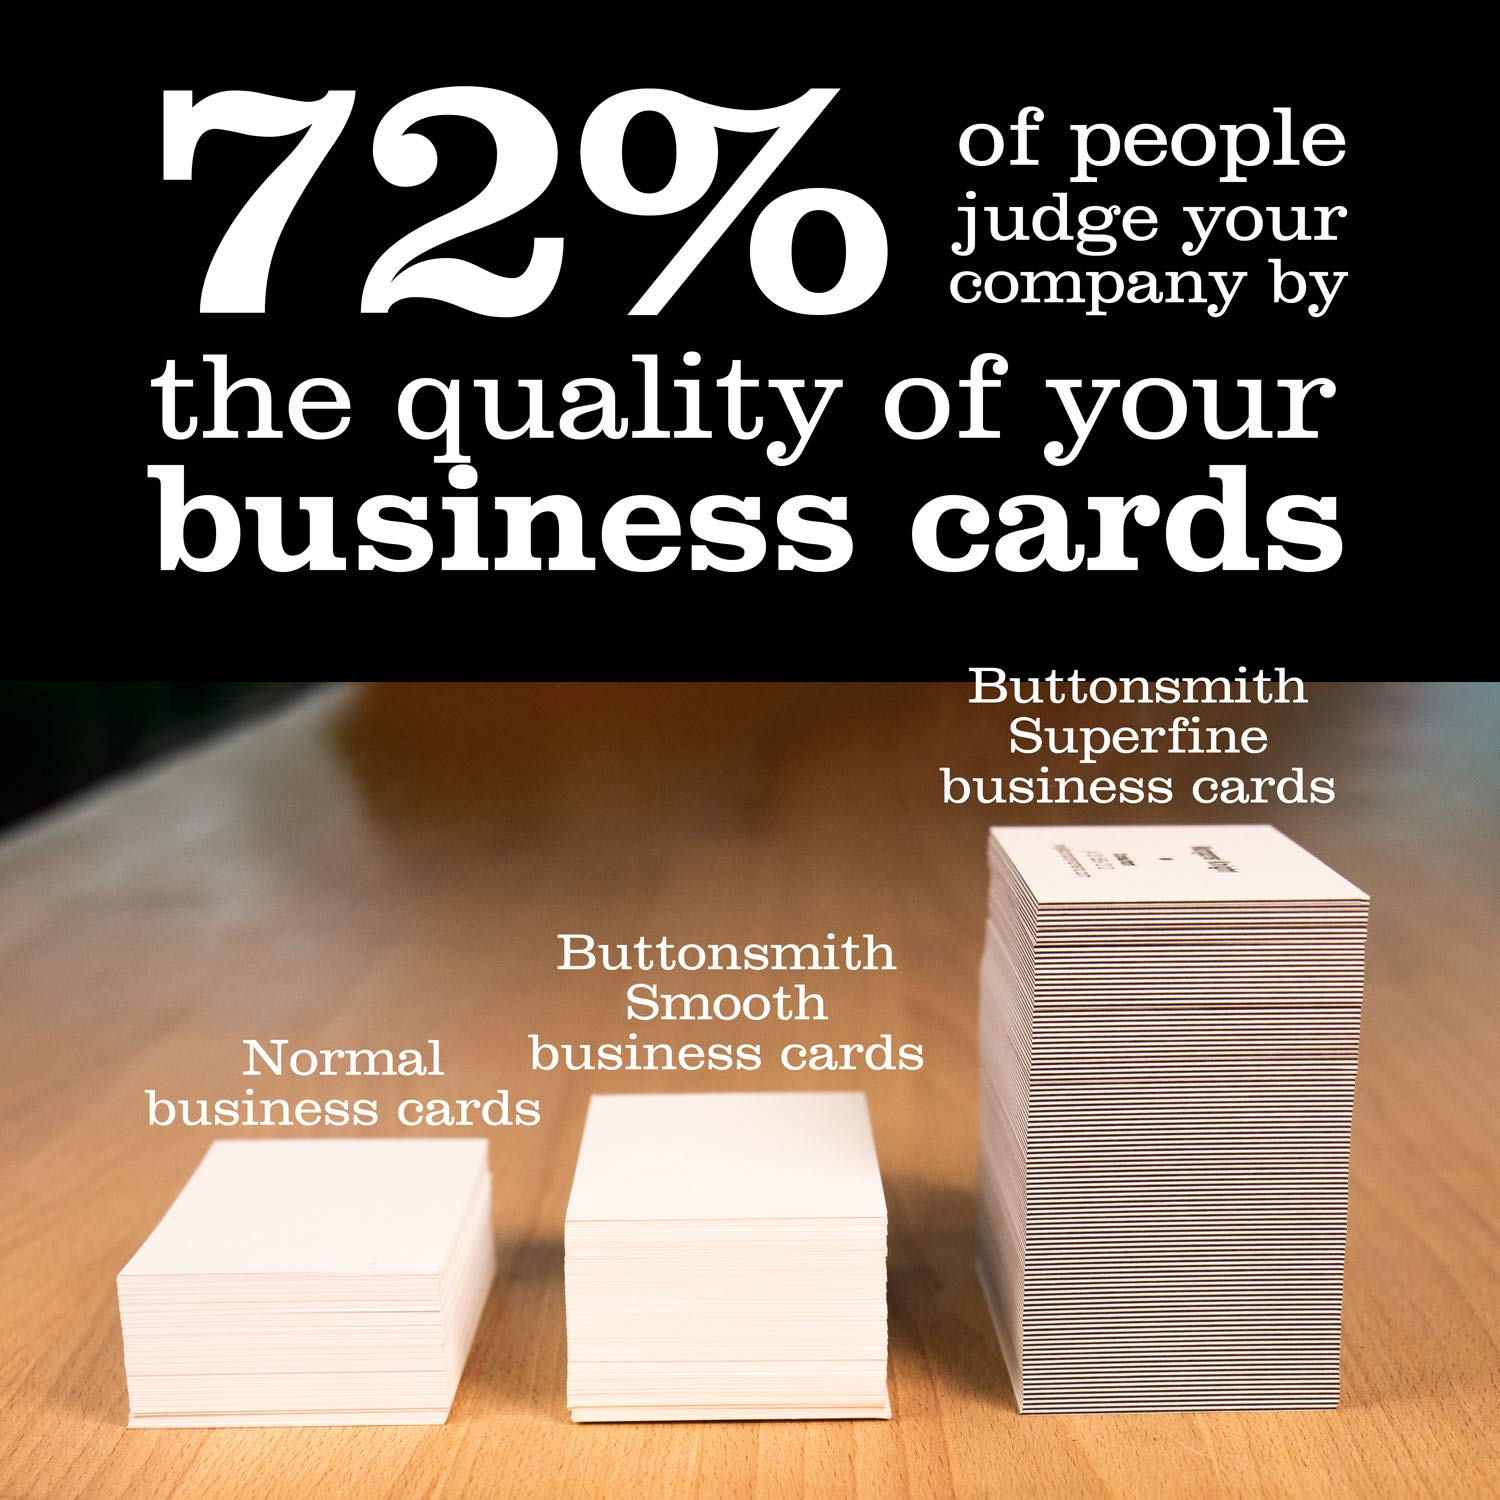 Buttonsmith Custom Ultra Thick Printed Business Cards - 3.5''x2'' - Quantity 500 - Double-Sided, 32 pt Smooth Touch - Made in The USA by Buttonsmith (Image #4)